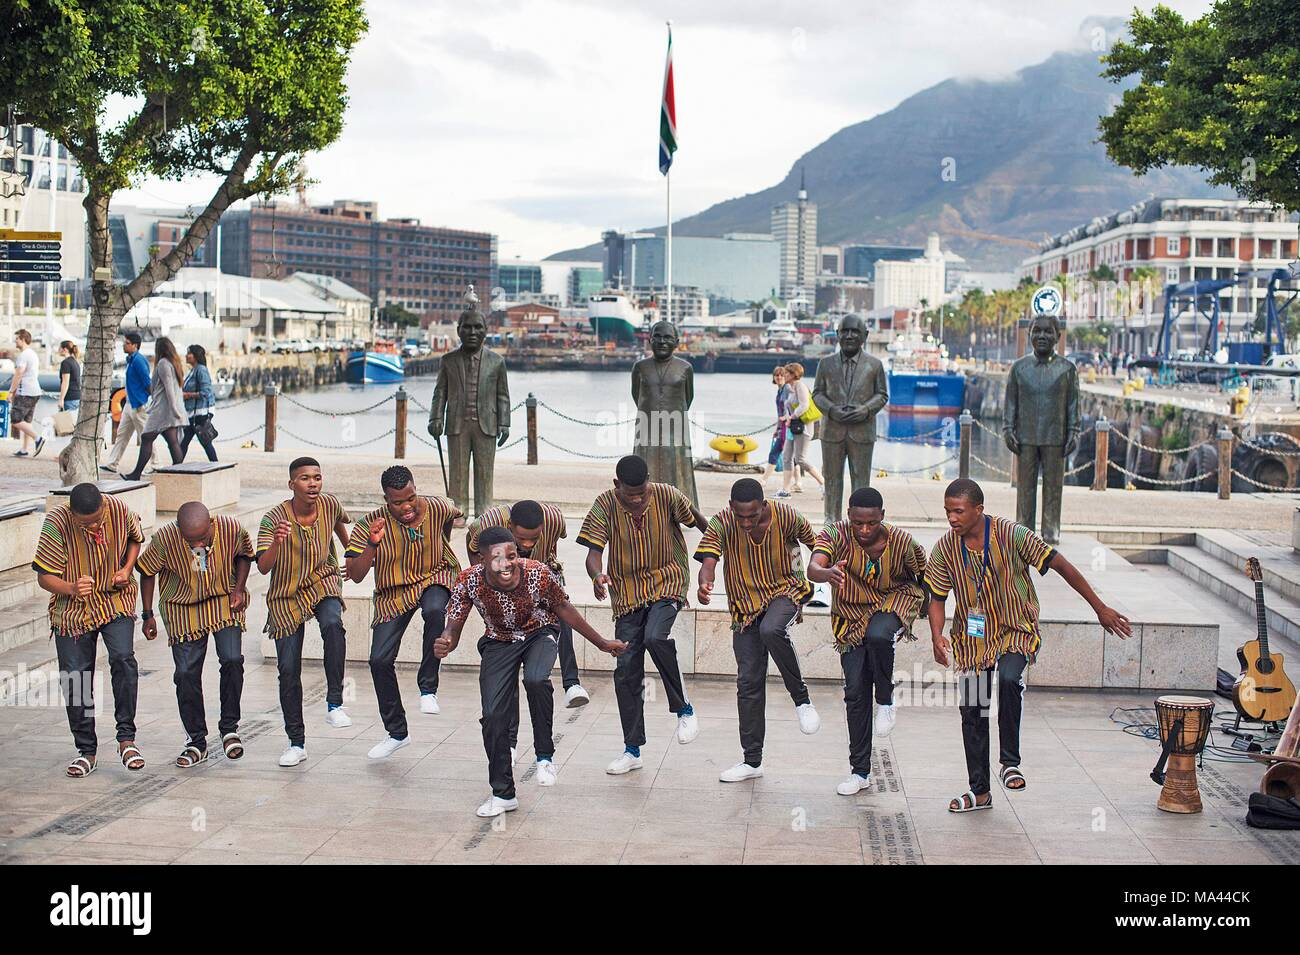 Dancers in front of the four bronze sculptures of the Nobel Peace Prize Laureates in Cape Town, South Africa - Stock Image